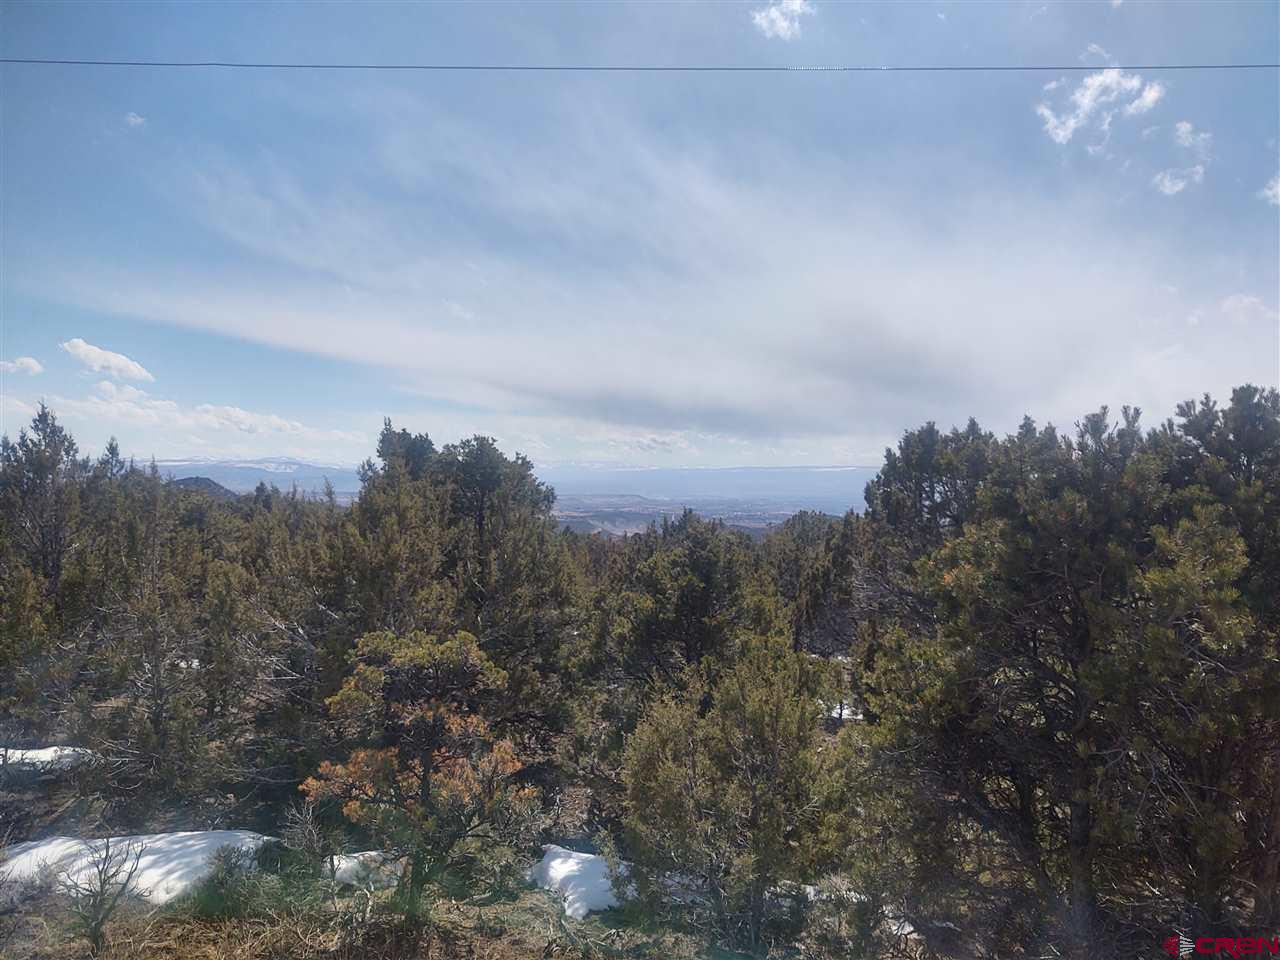 6 plus acres with fantastic views of the mountains and valley below. One Coalby domestic water tap included. All utilities in the public road right of way. Very private, No junk properties around.